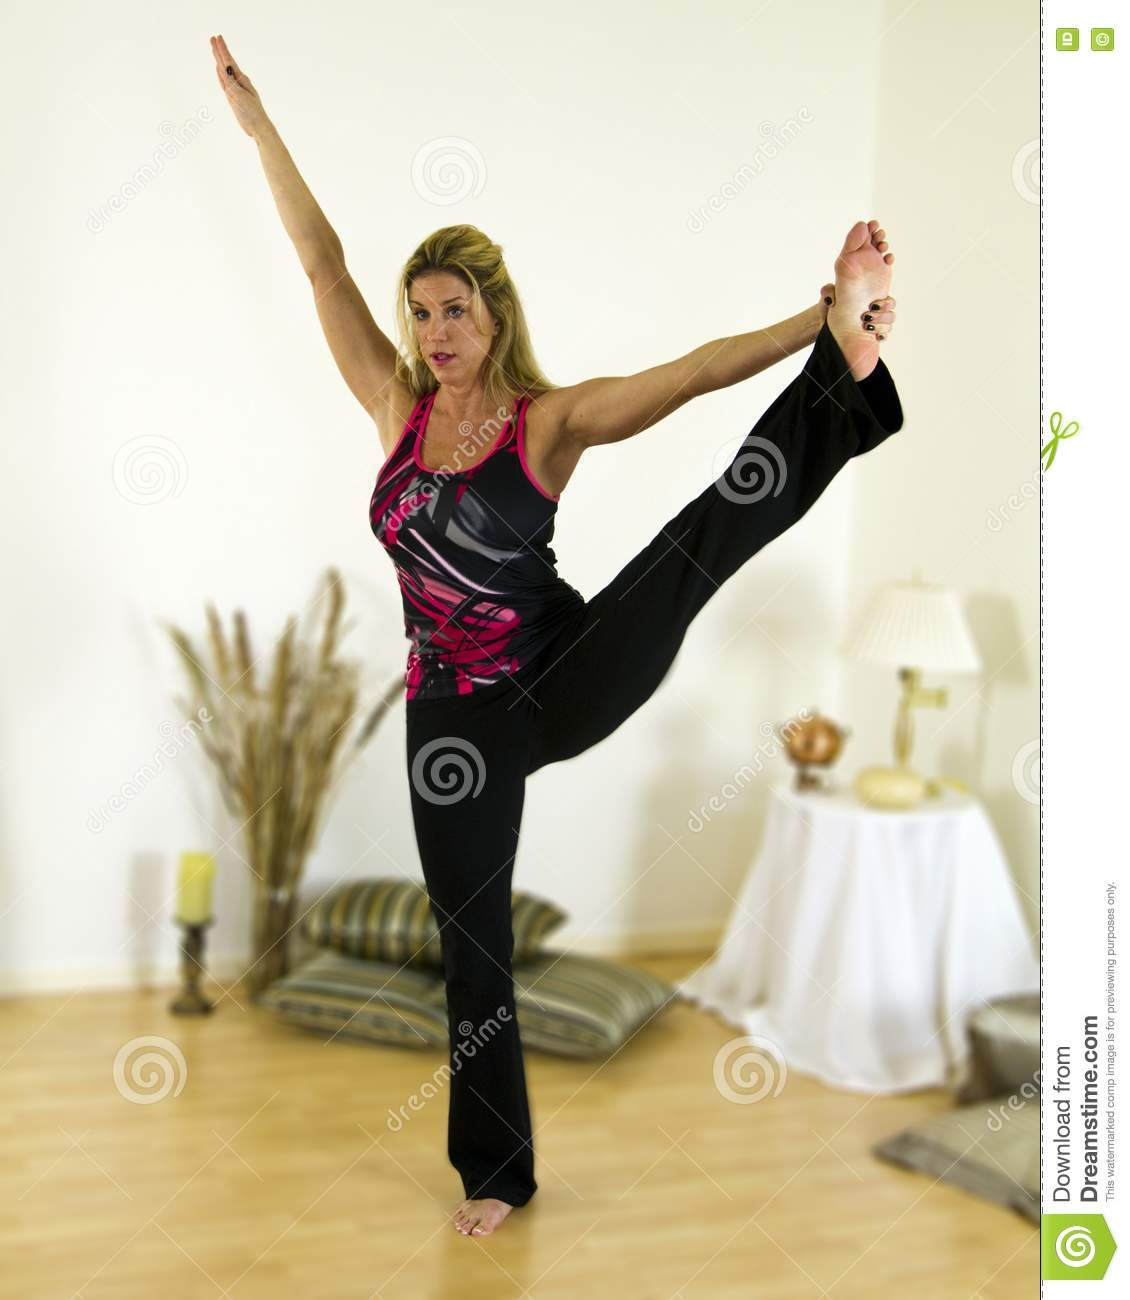 Yoga Advanced Balance Pose Royalty Free Stock Photo ...